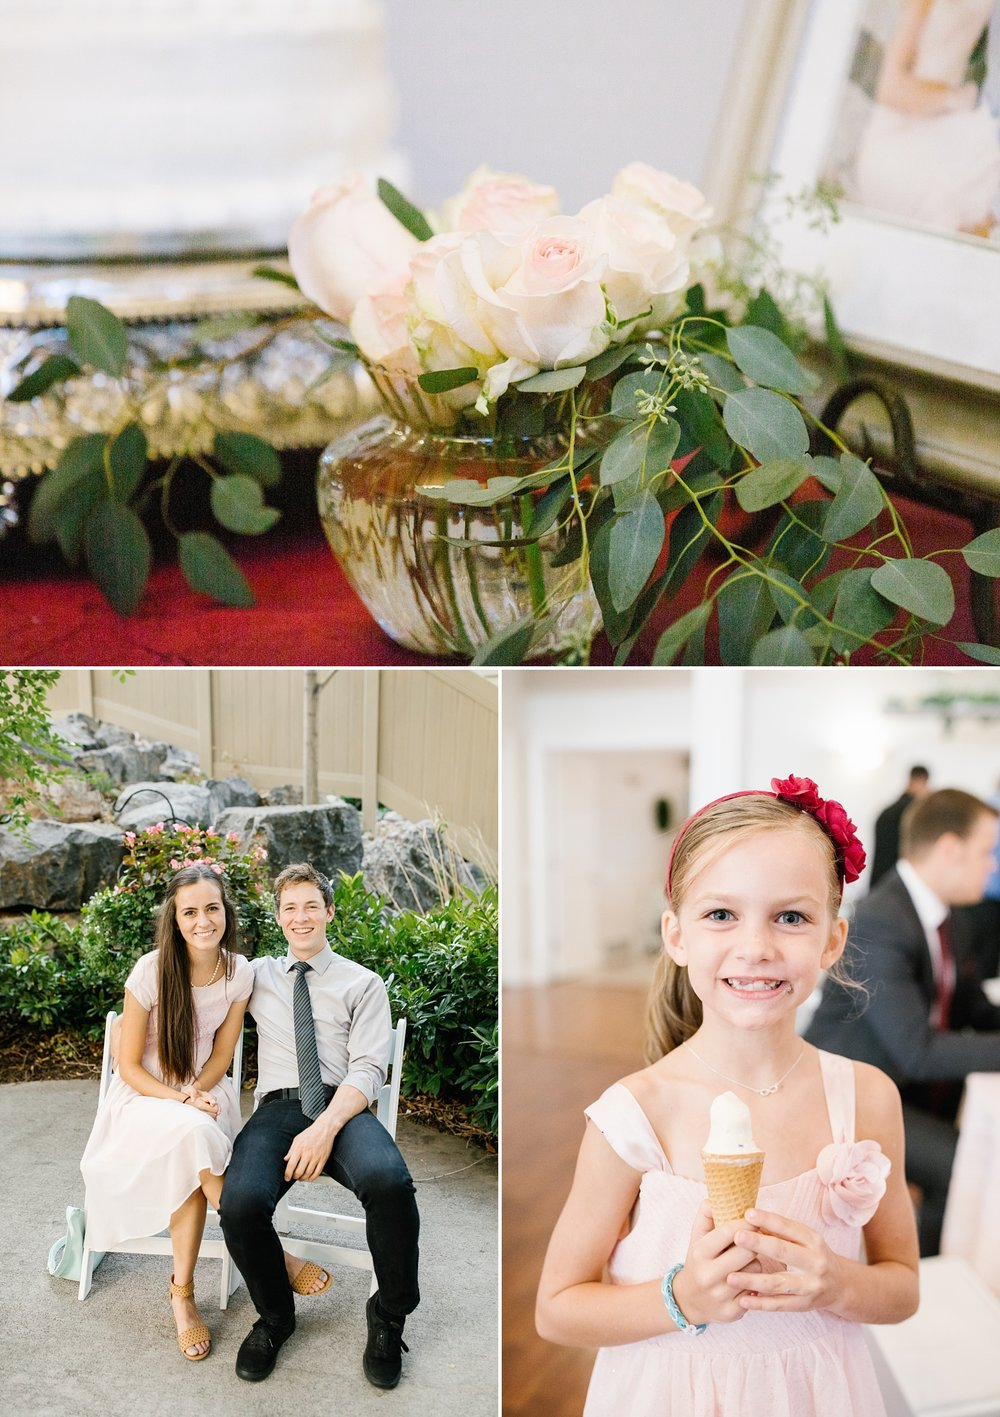 HannahChaseWedding-366_Lizzie-B-Imagery-Utah-Wedding-Photographer-Bridal-Photography-Payson-Utah-Temple-Clarion-Gardens-Catering-and-Events-Center.jpg